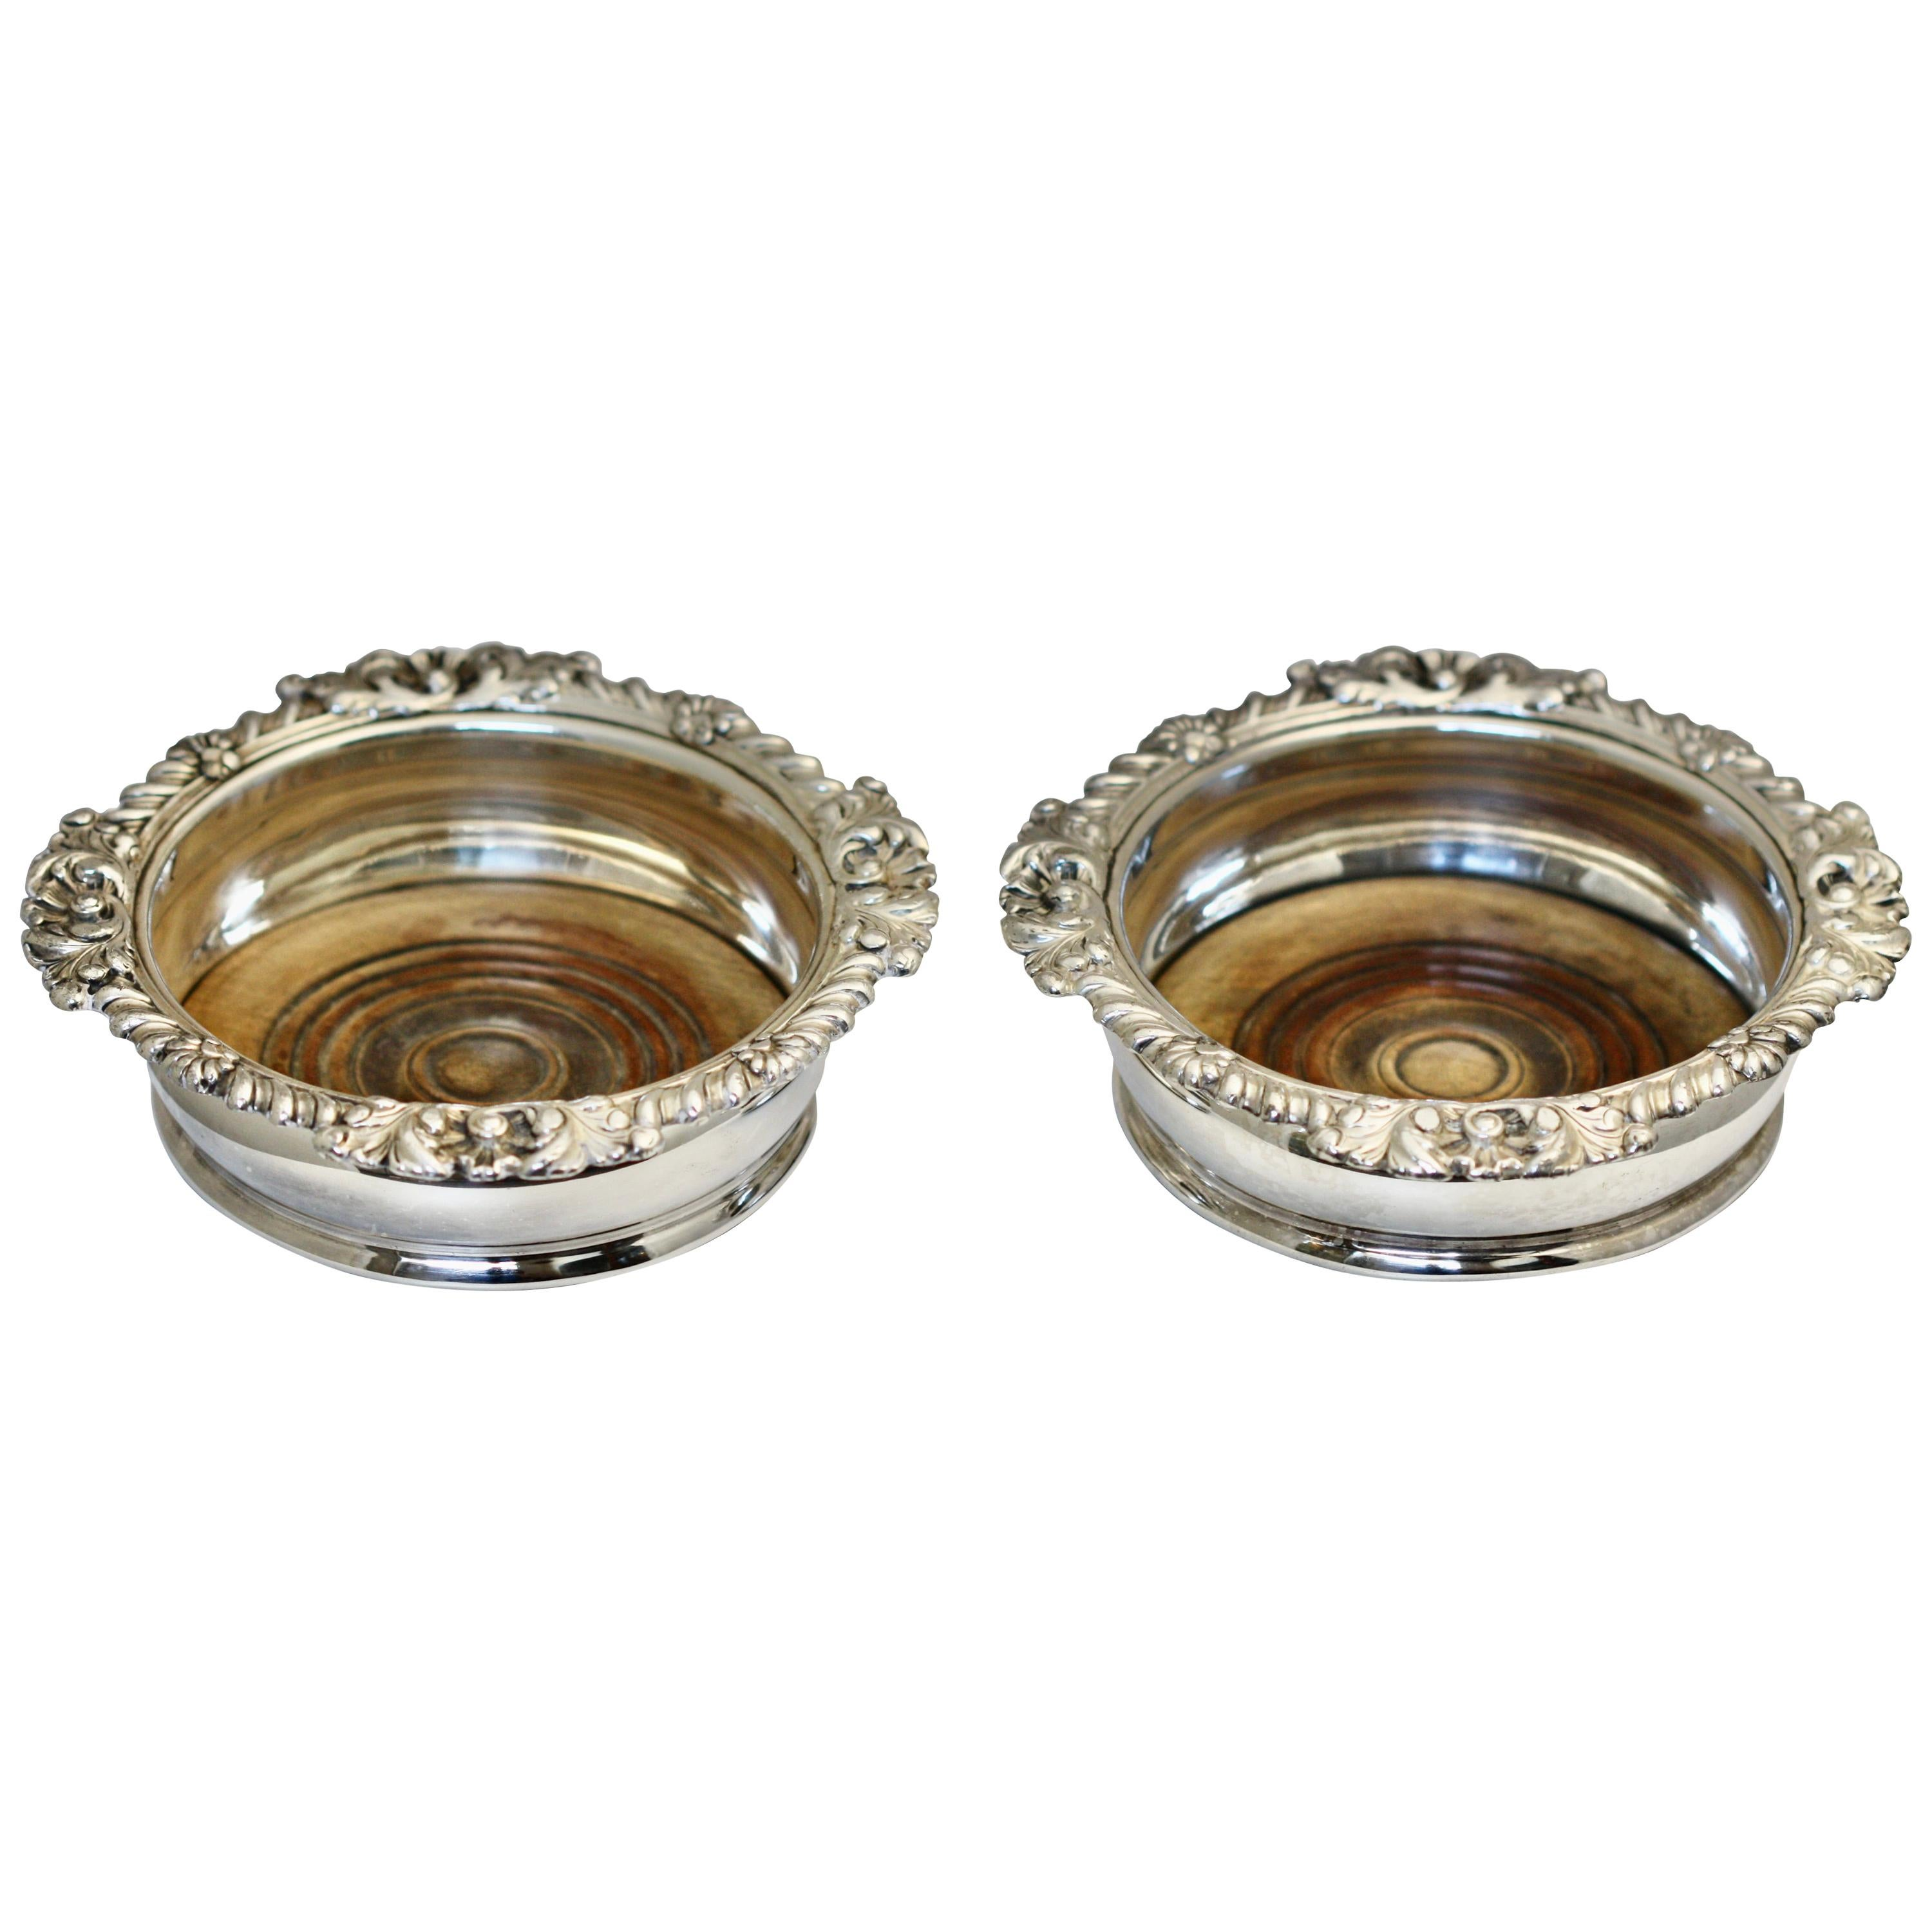 Sterling Silver Wine Coasters English, London, 1810